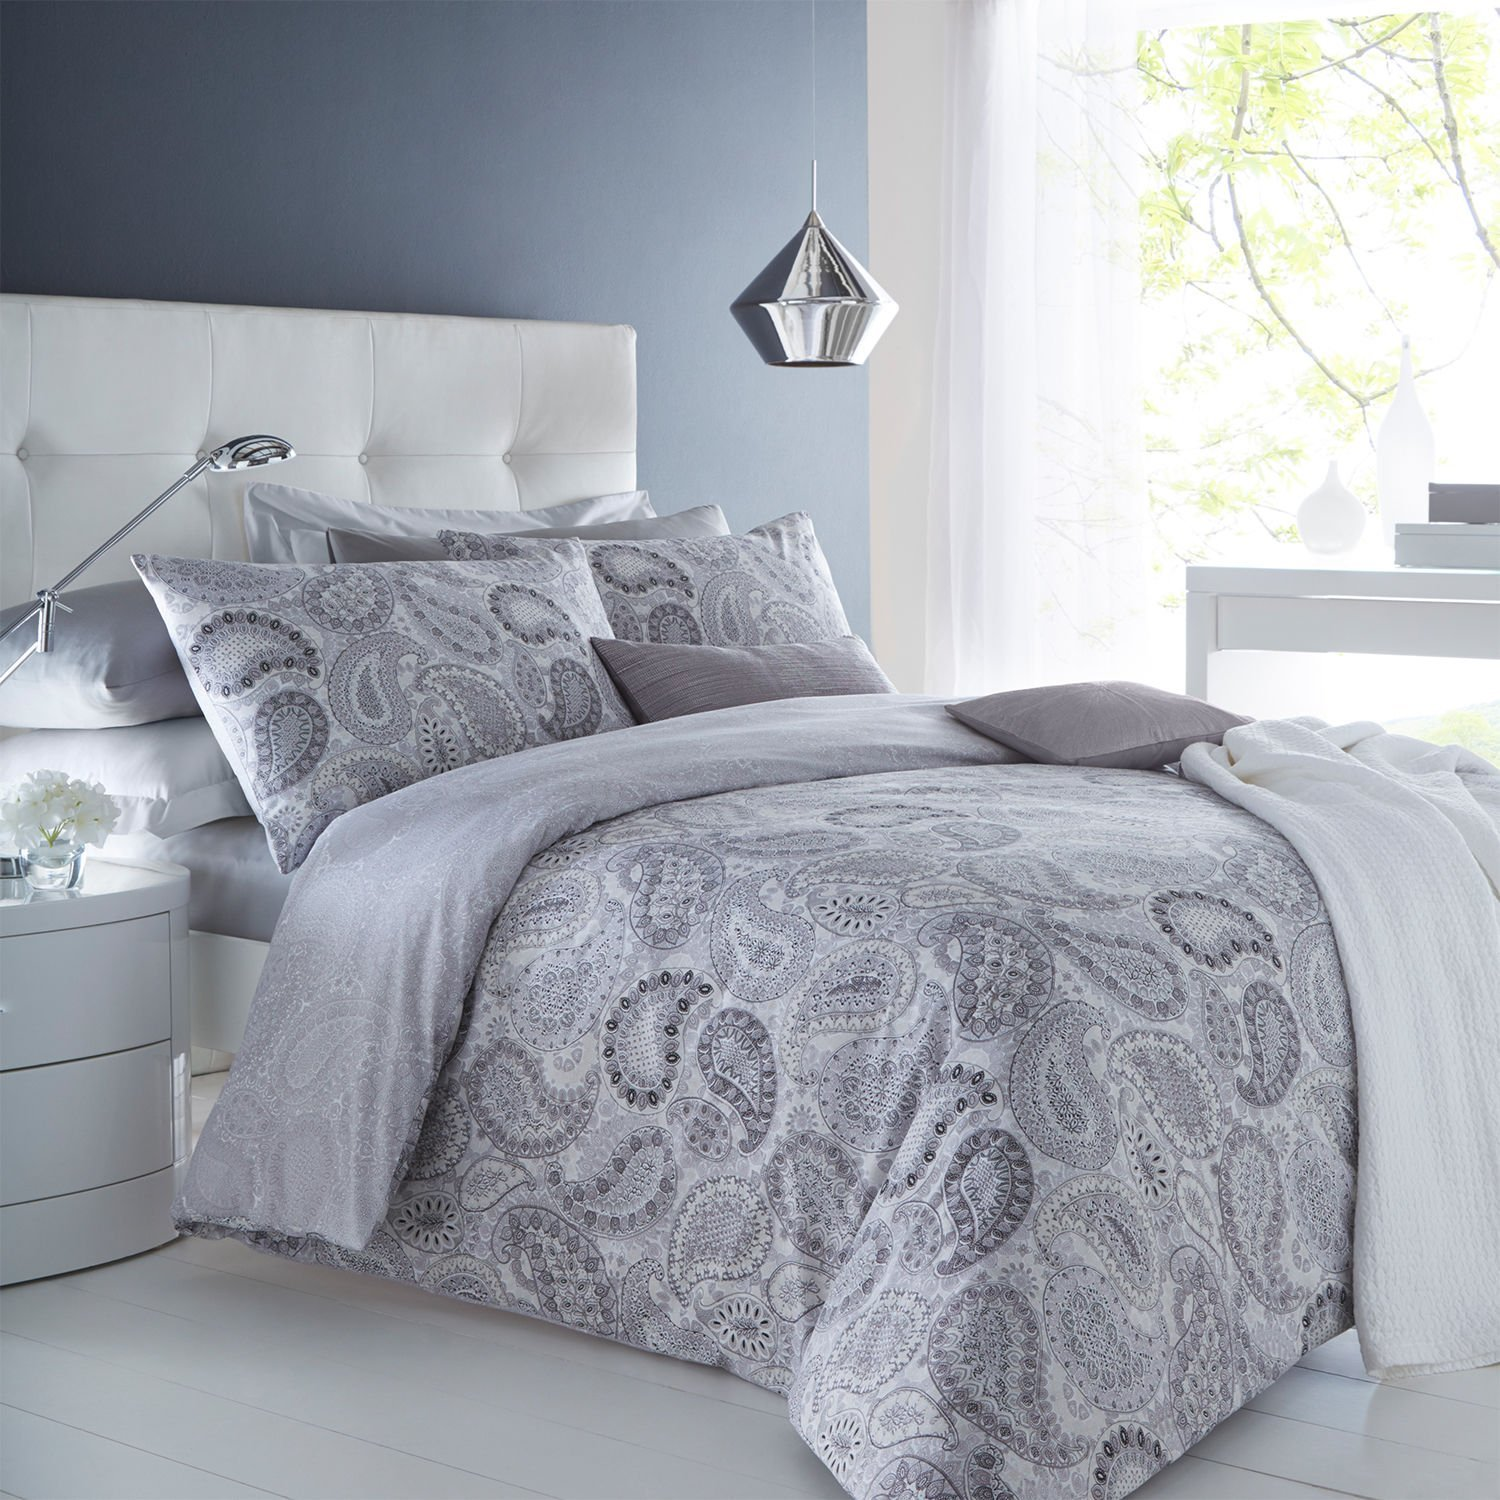 Image of: Gray Bedding Sets For Dorms